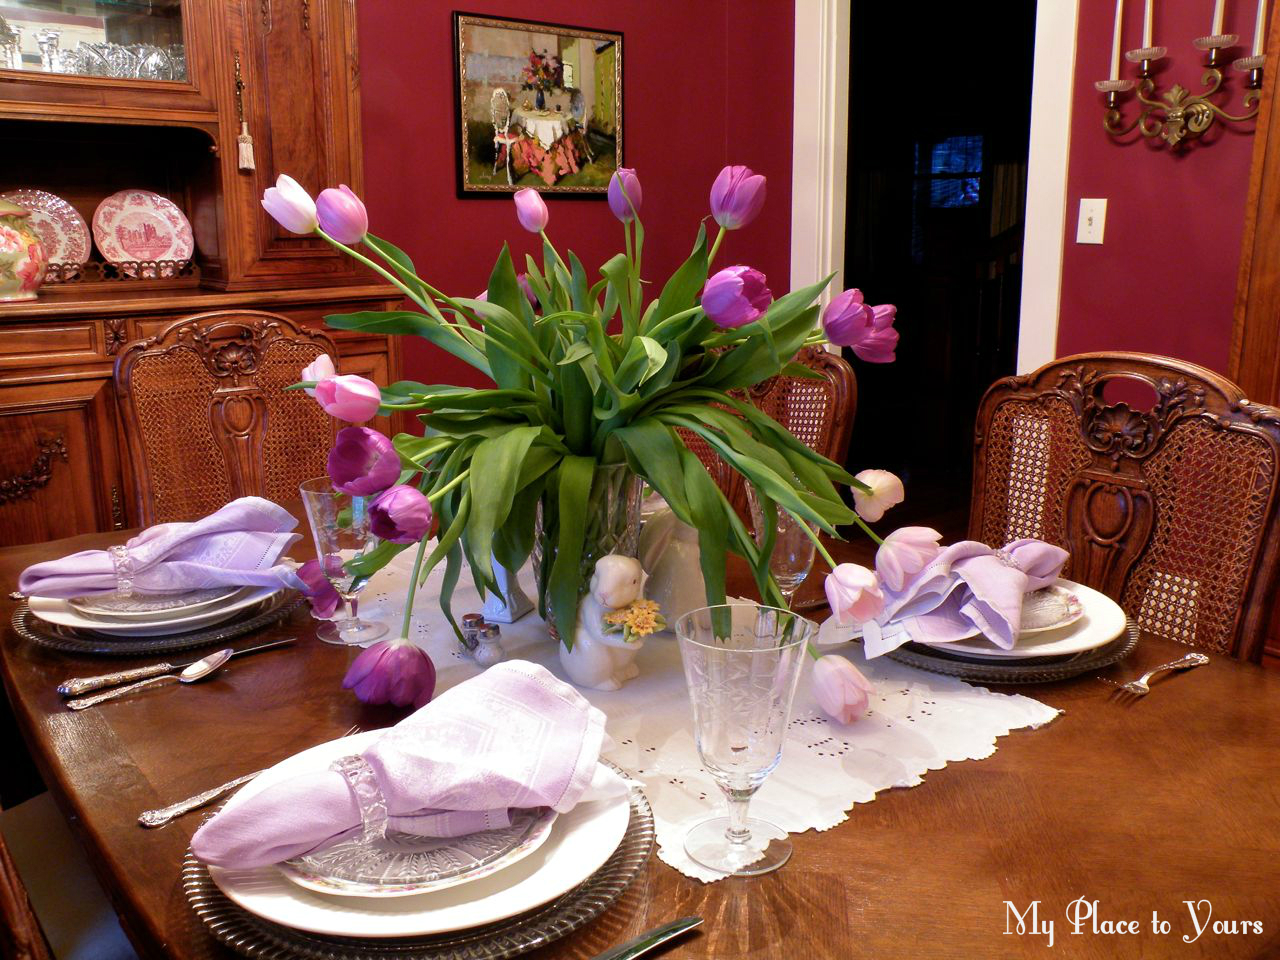 Bunnies at the cross an offensive easter tablescape - Interesting tables capes for christmas providing cozy gathering space ...